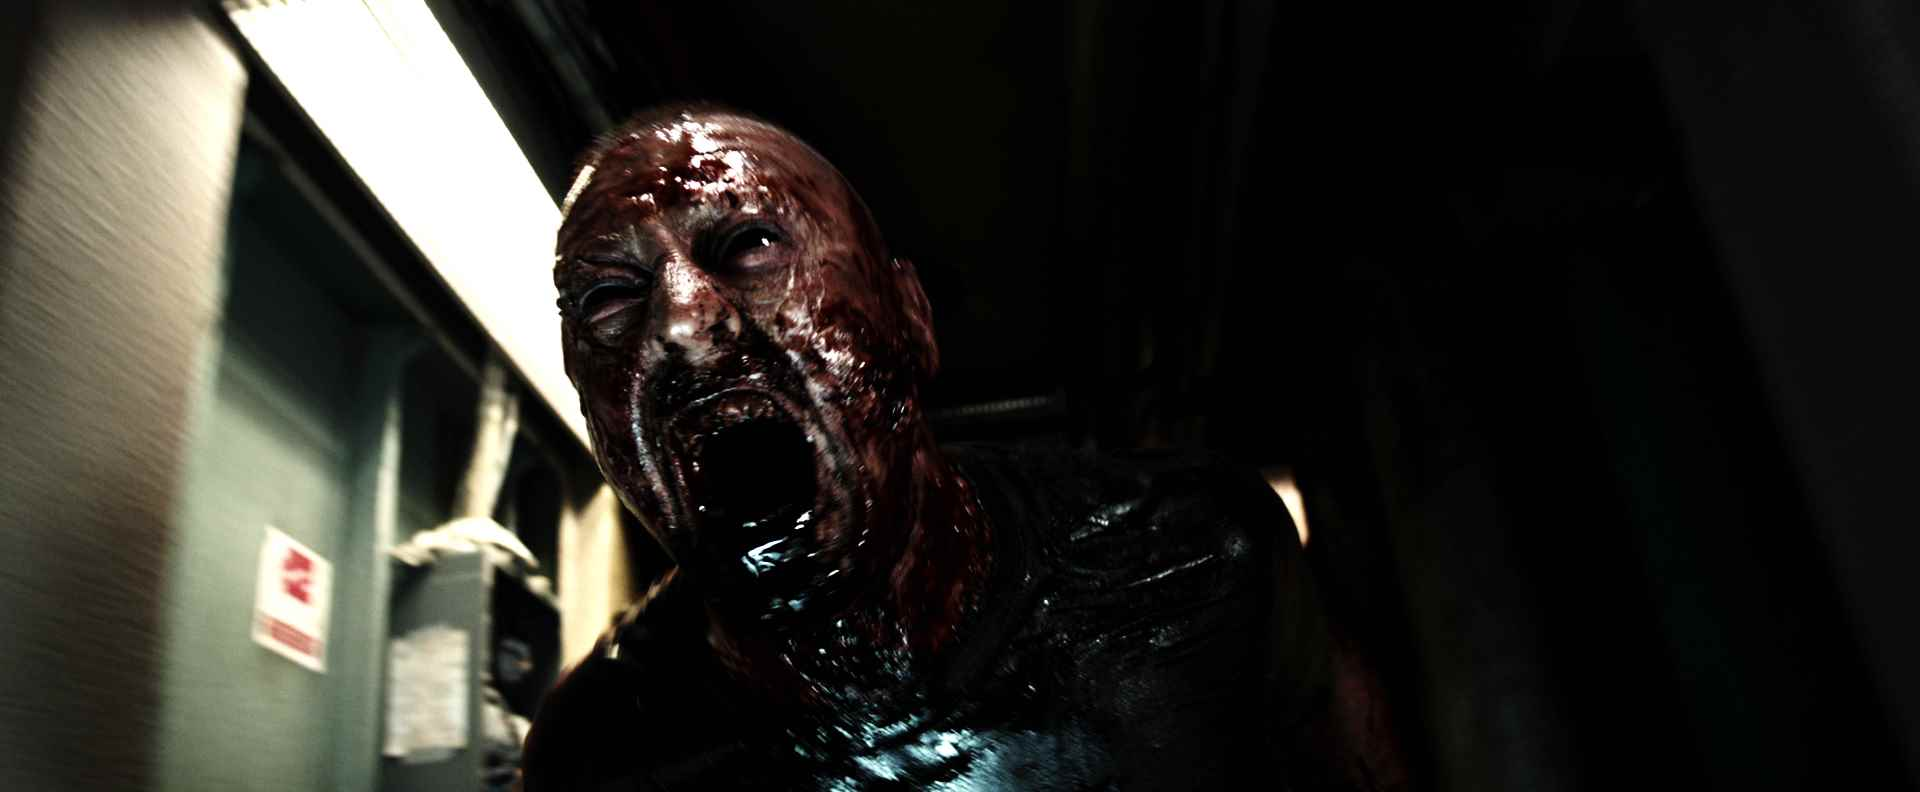 Another still from Rec 4